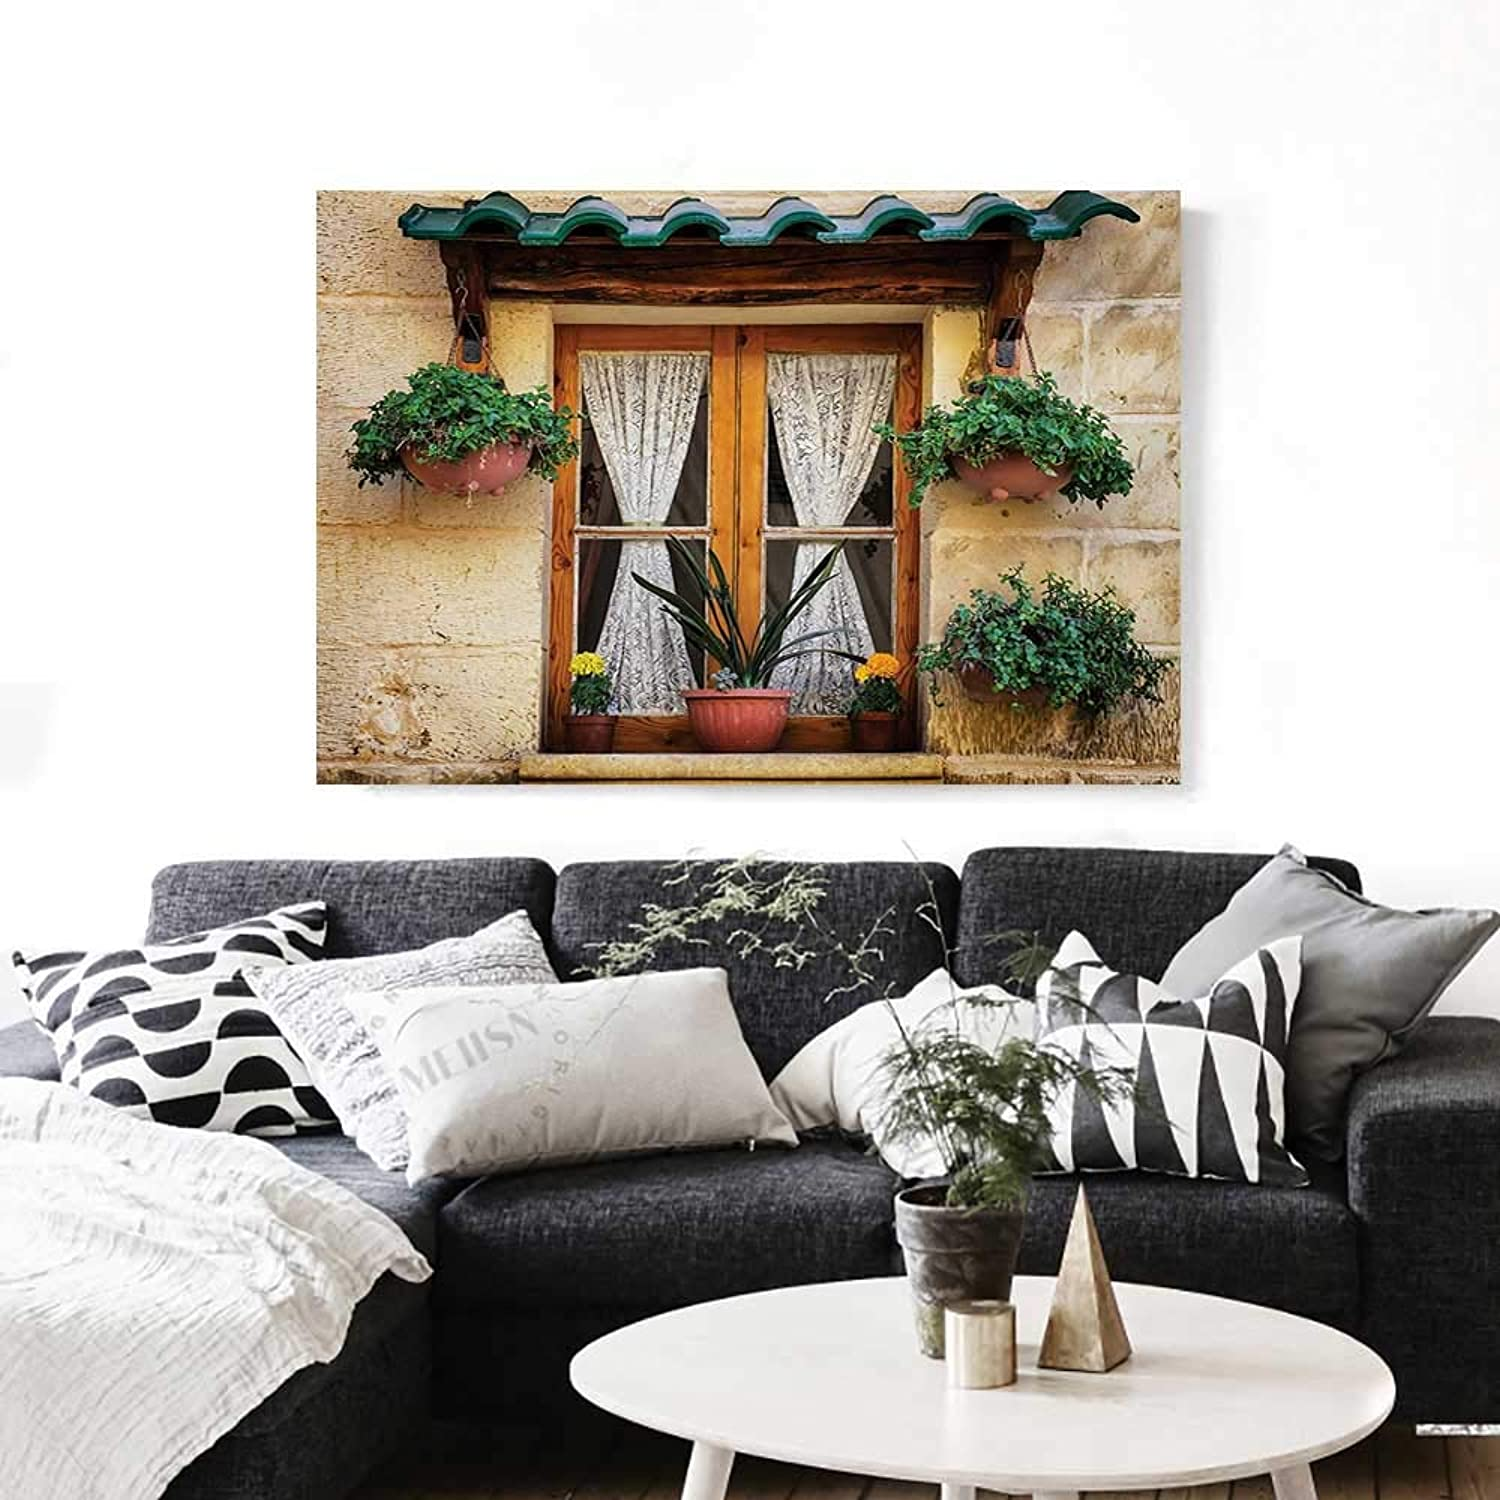 Shutters Wall Paintings Basket of Flowers Historic Building Window with Classic Lace Curtain Inside Image Print On Canvas for Wall Decor 36 x32  Beige Green